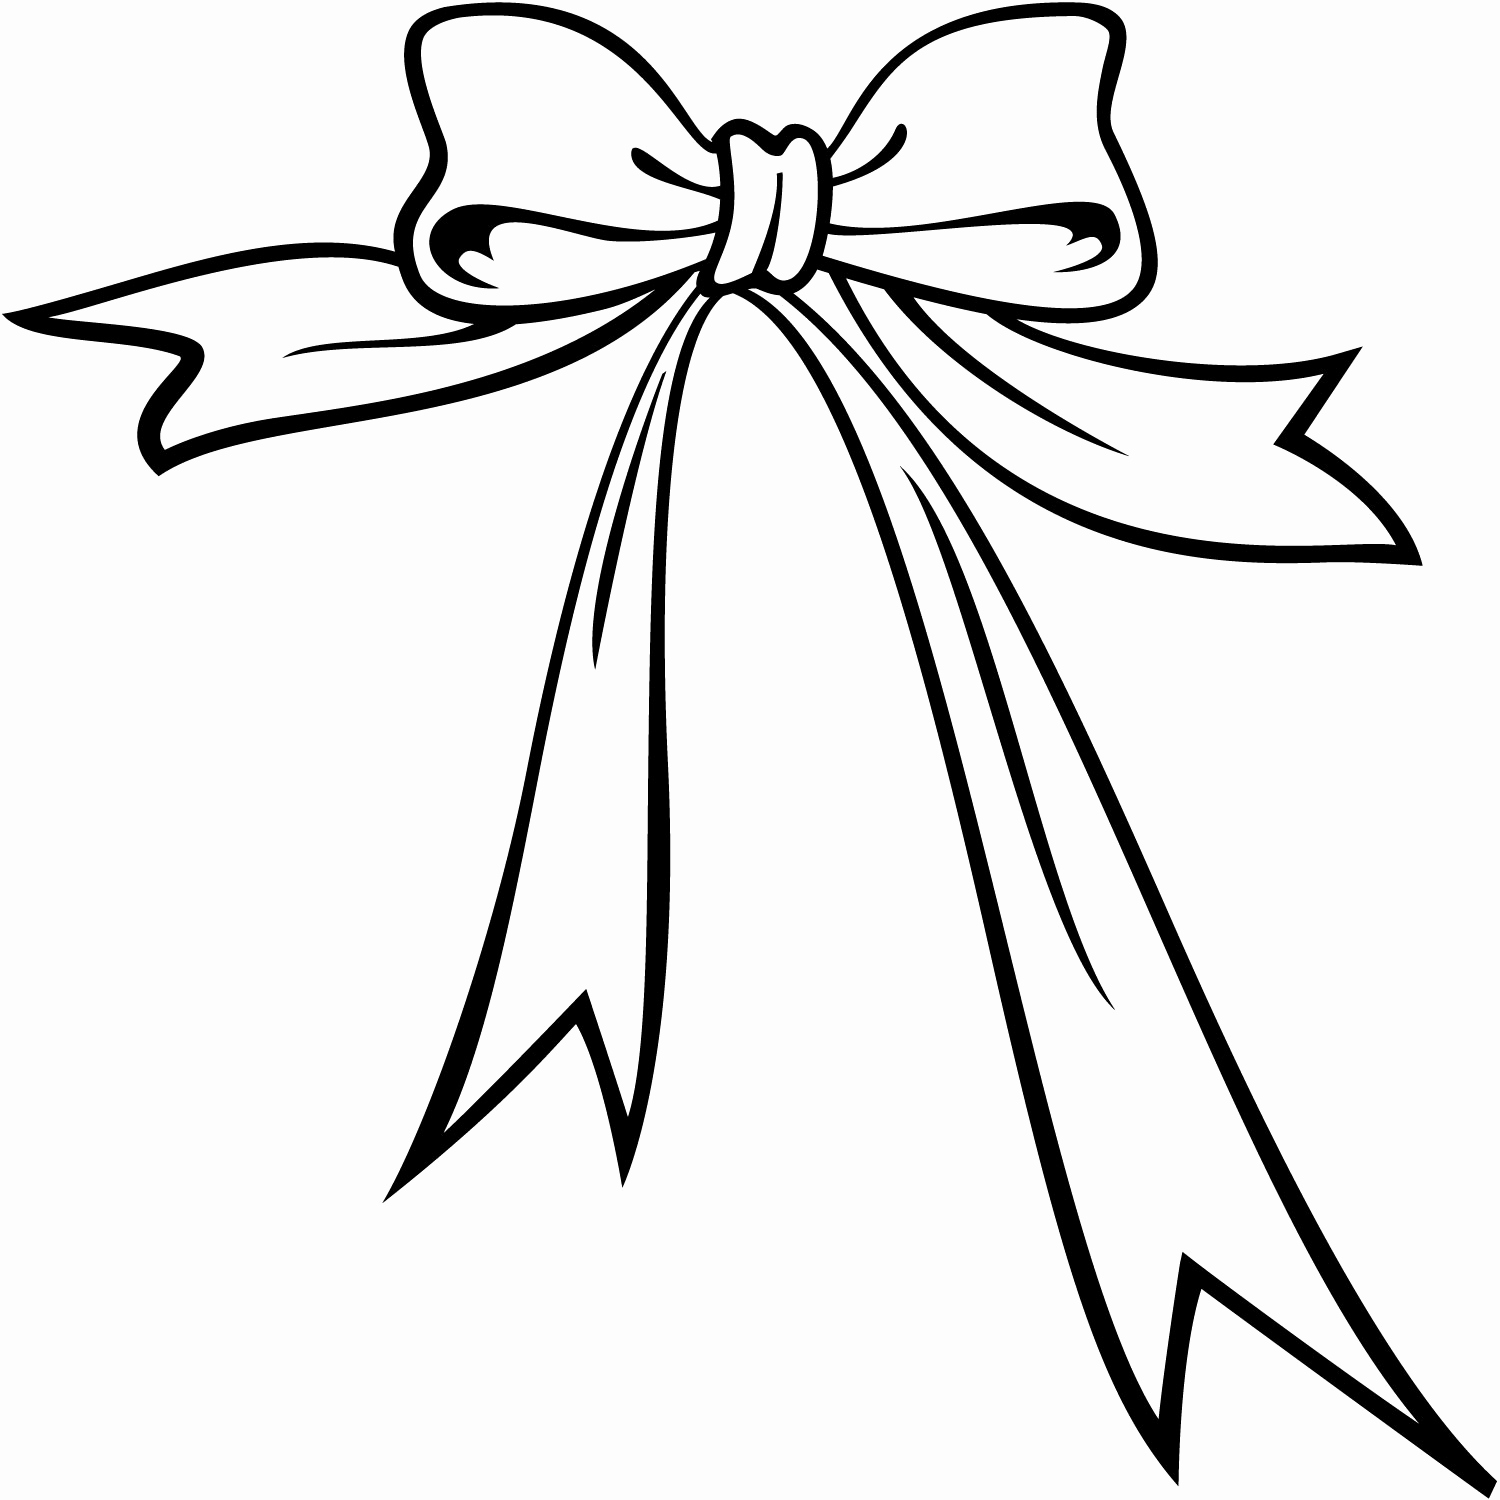 1500x1500 Drawing Tie Fresh Bow Tie Clipart Fancy Pencil And In Color Bow